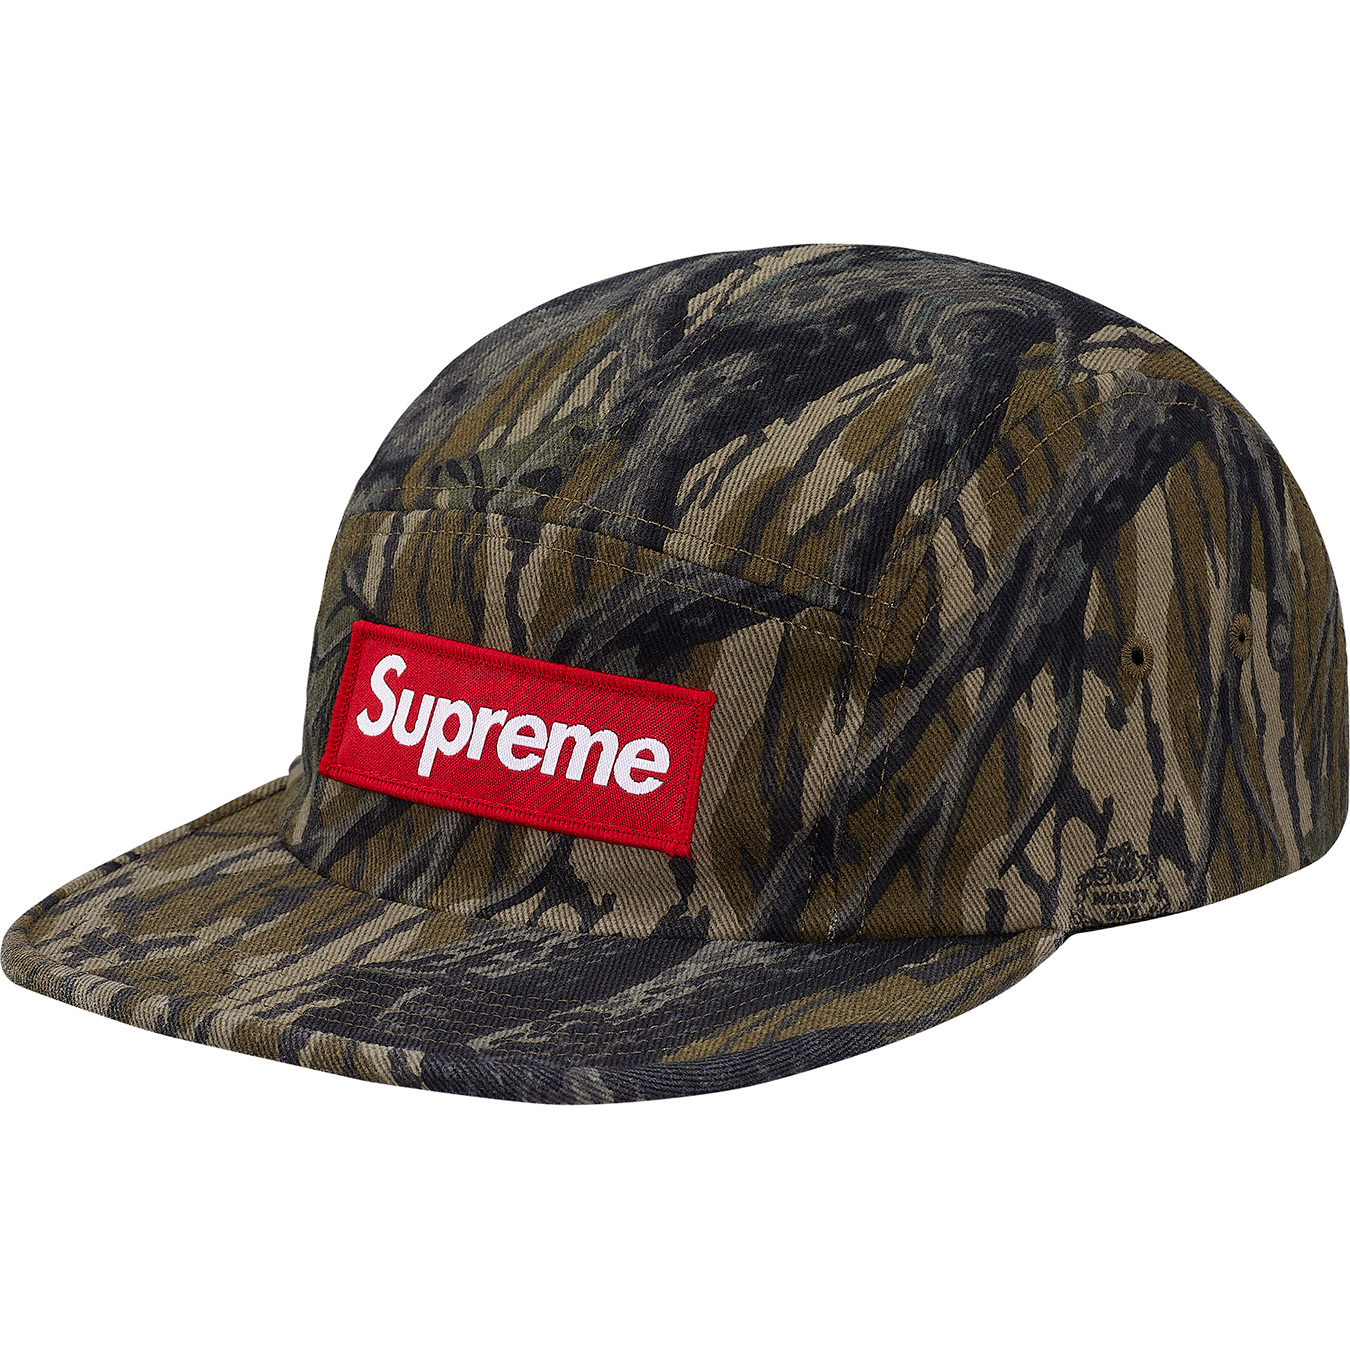 e034e2c9 Supreme FW18 Military Camp Cap Mossy Oak Camo | Novelship: Buy and Sell  Sneakers, Streetwear, 100% Authentic